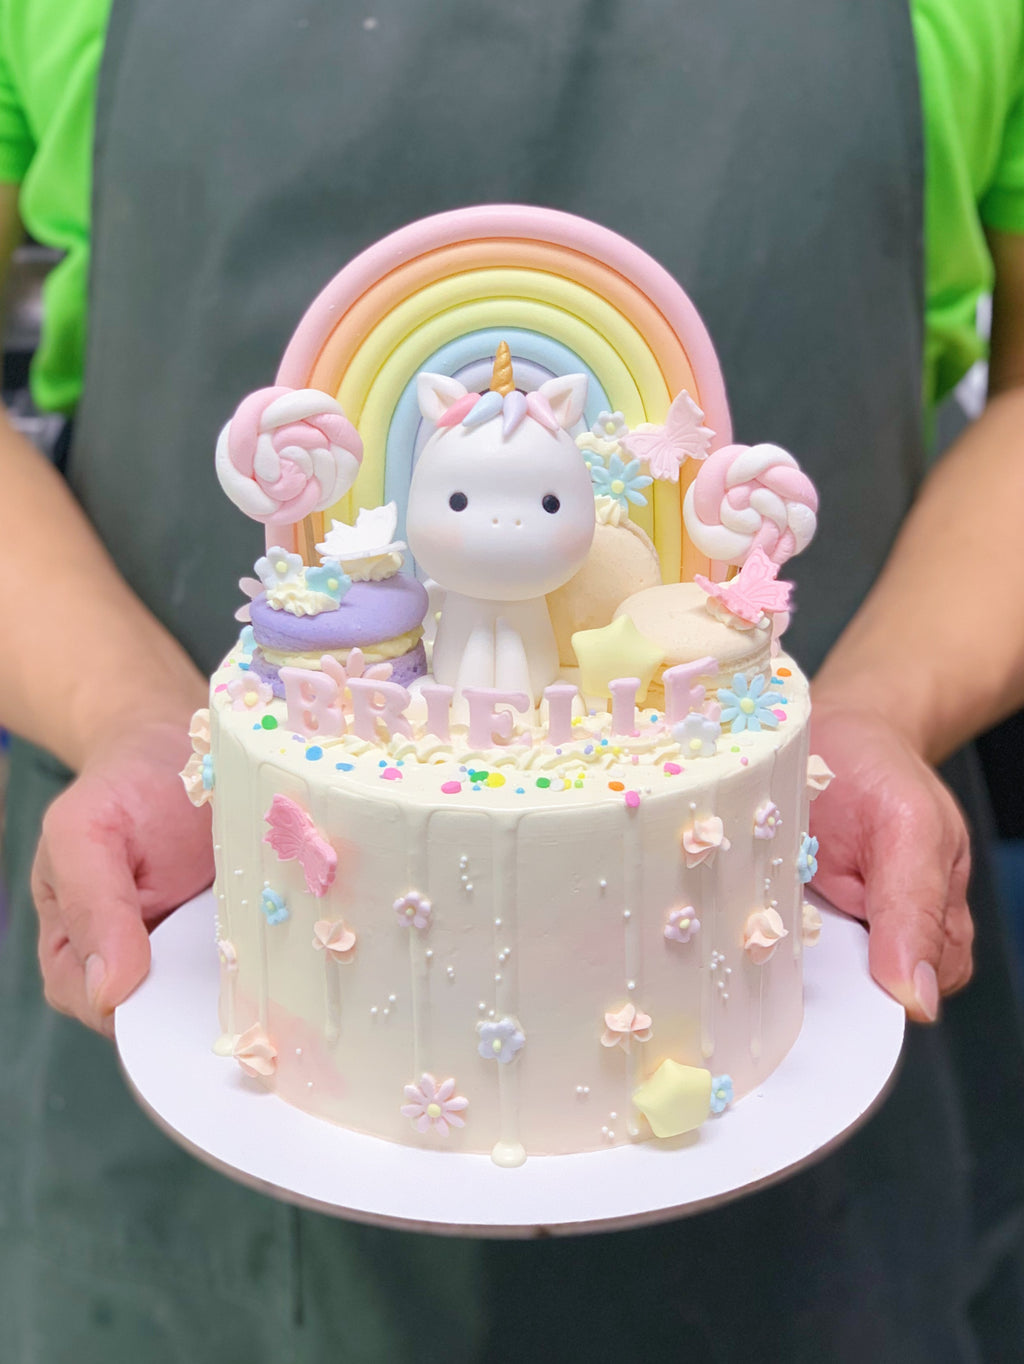 Pastel Watercolour Drip Cake with Unicorn and Rainbow